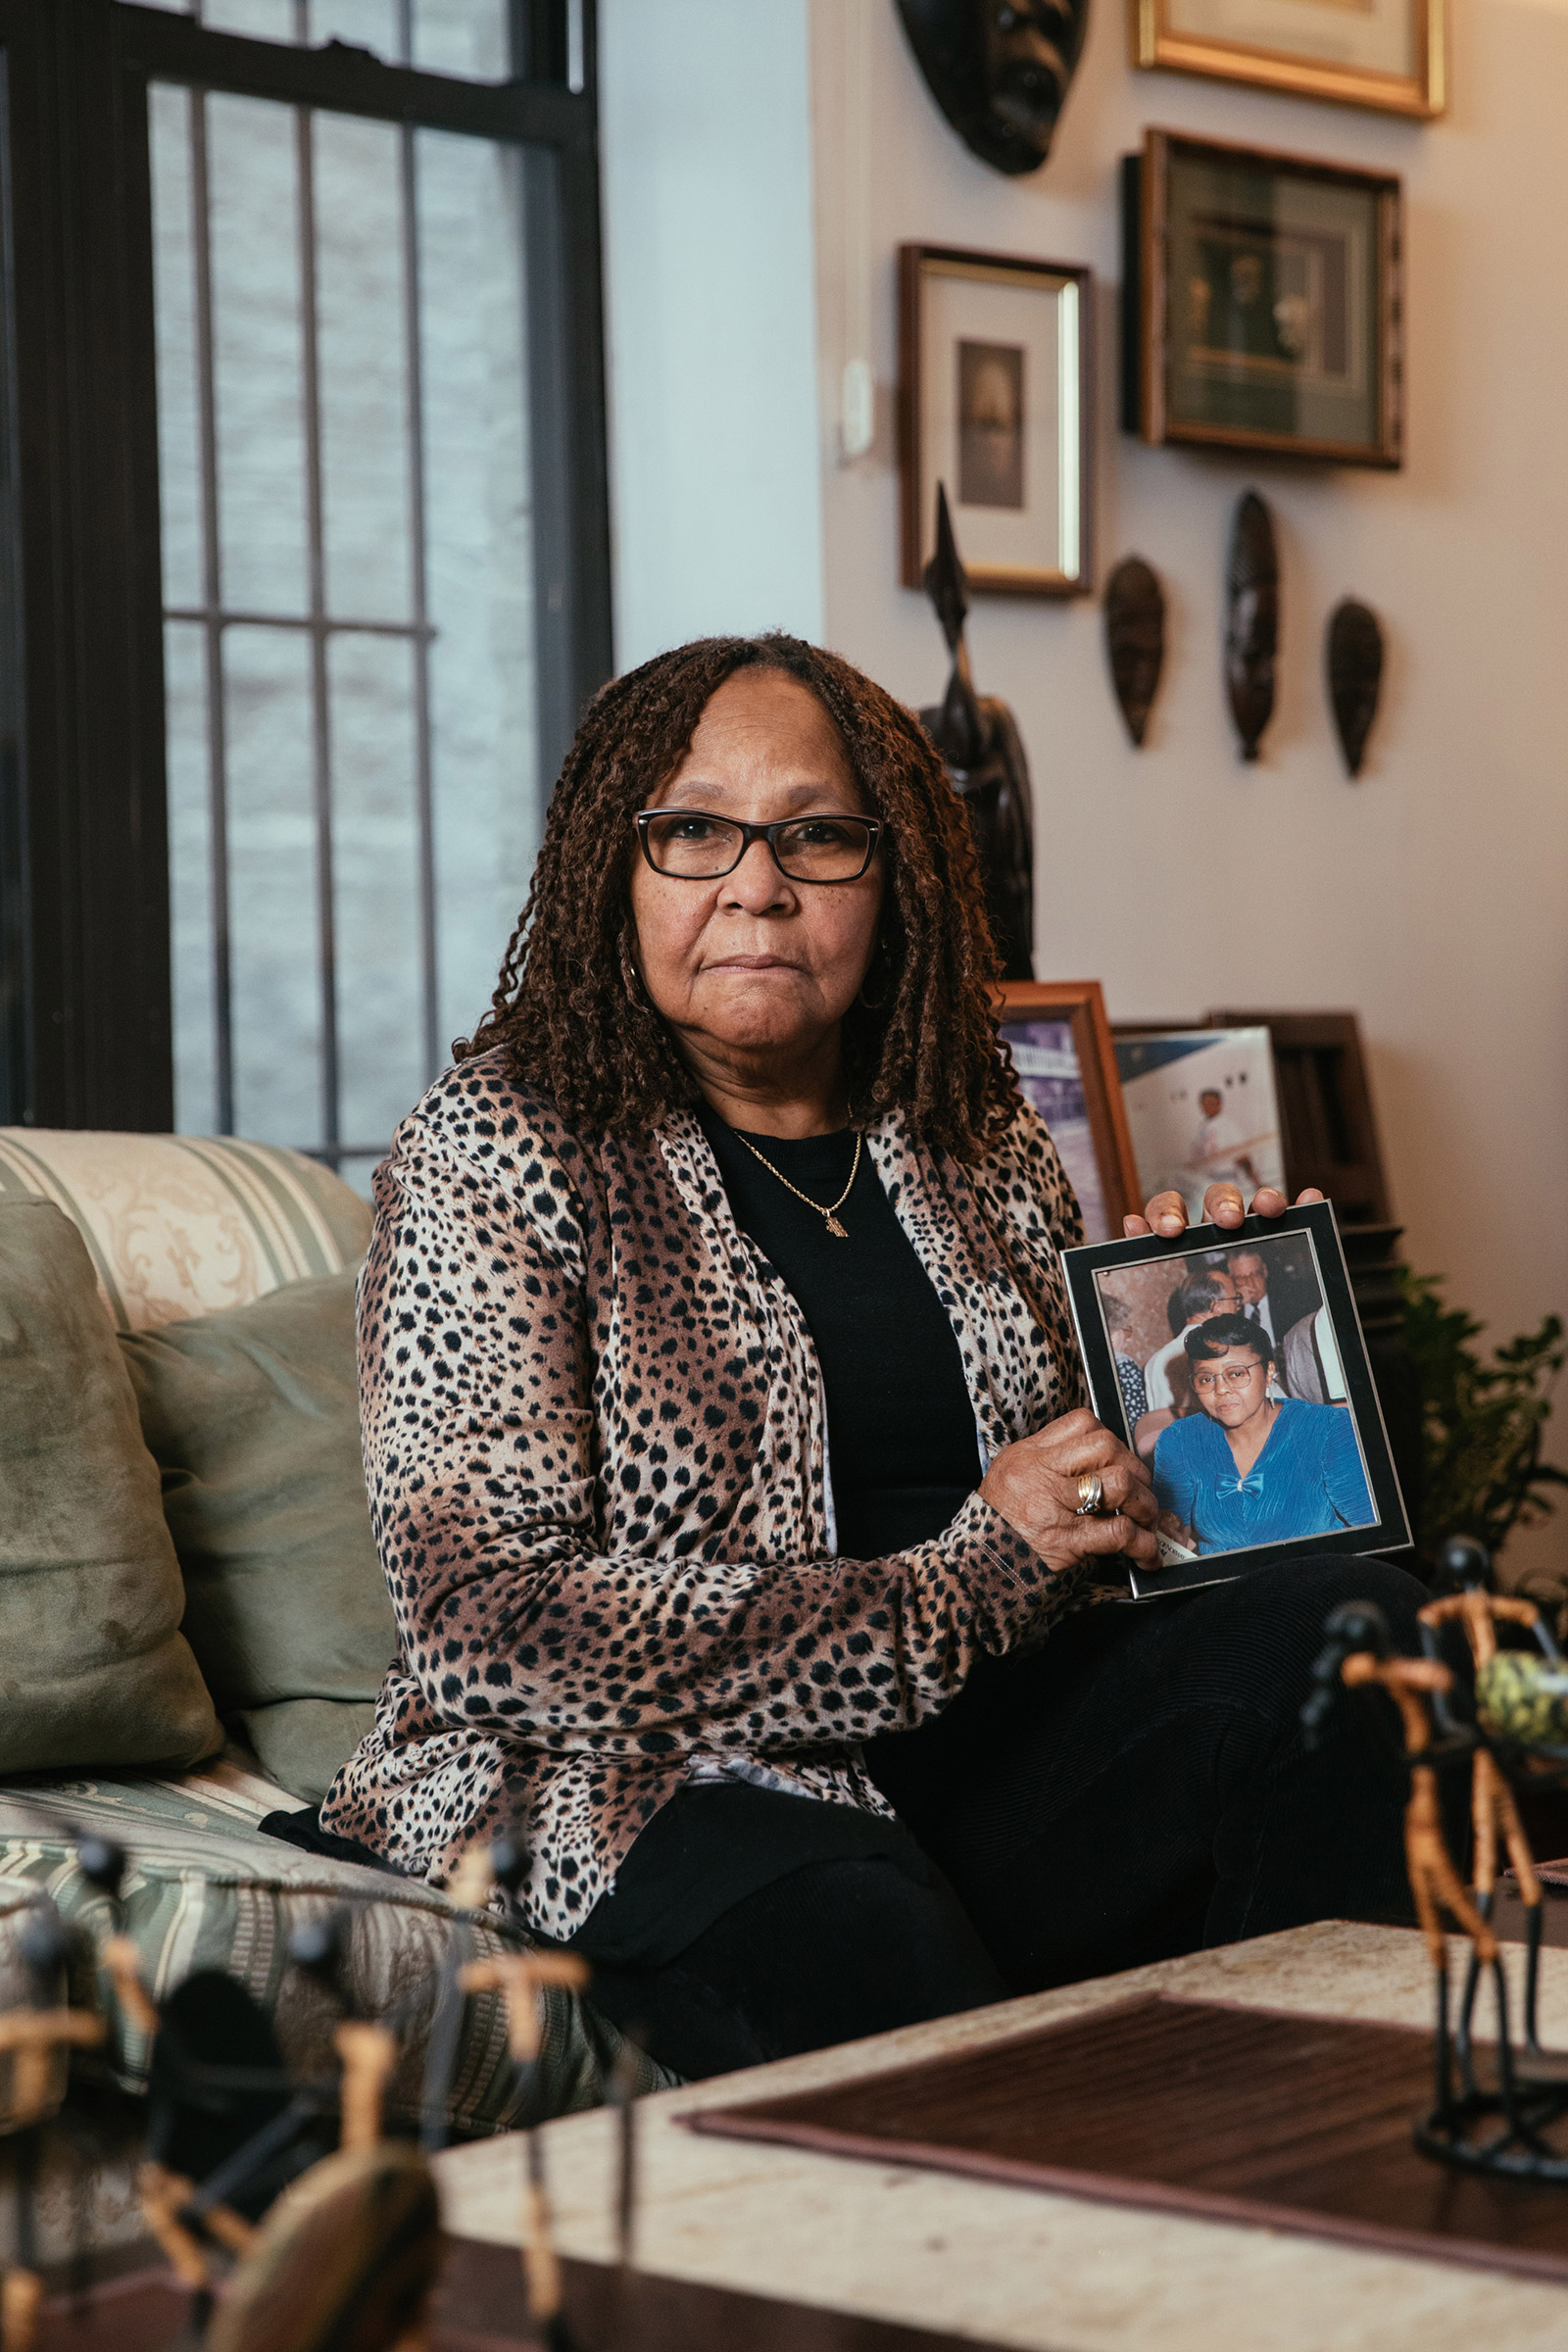 Eleanor Leonard holds a photograph of her aunt, Janie Marshall, at home in Brooklyn, New York on Feb. 15, 2021.